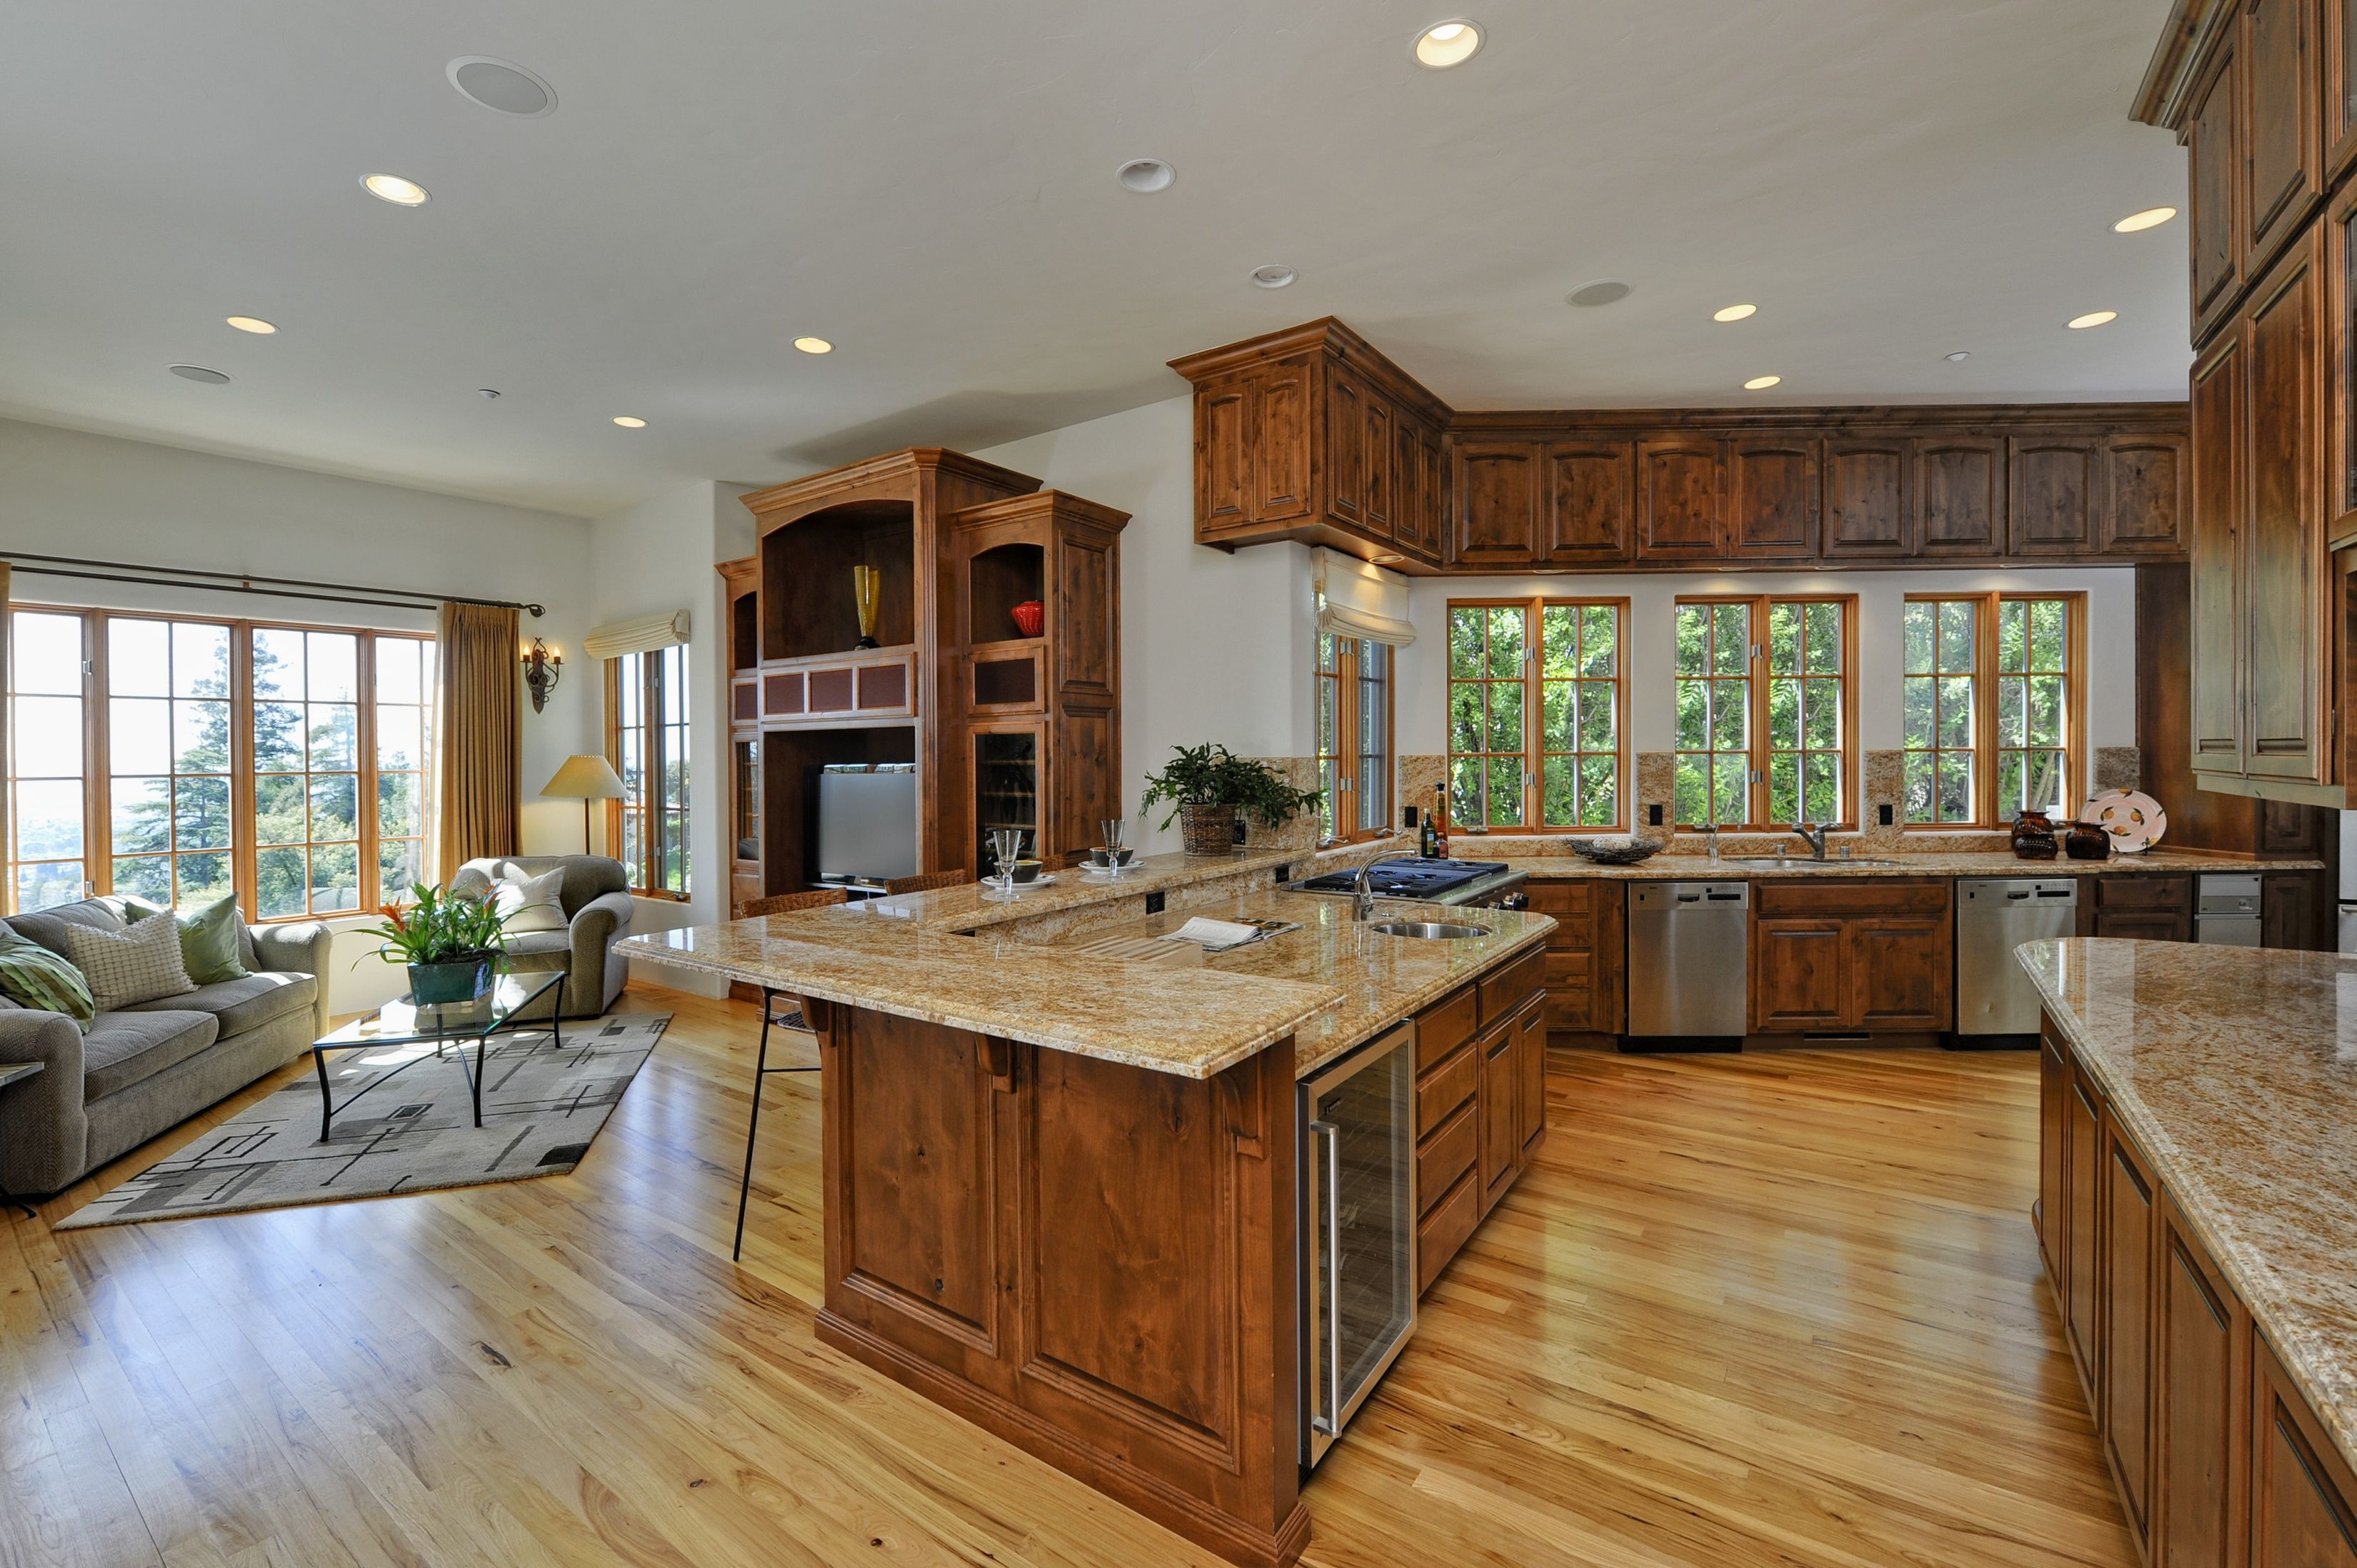 Magnificent Small Open Floor Plan Living Room Kitchen Dining Kitchen Design Open Open Floor House Plans Dining Room Layout